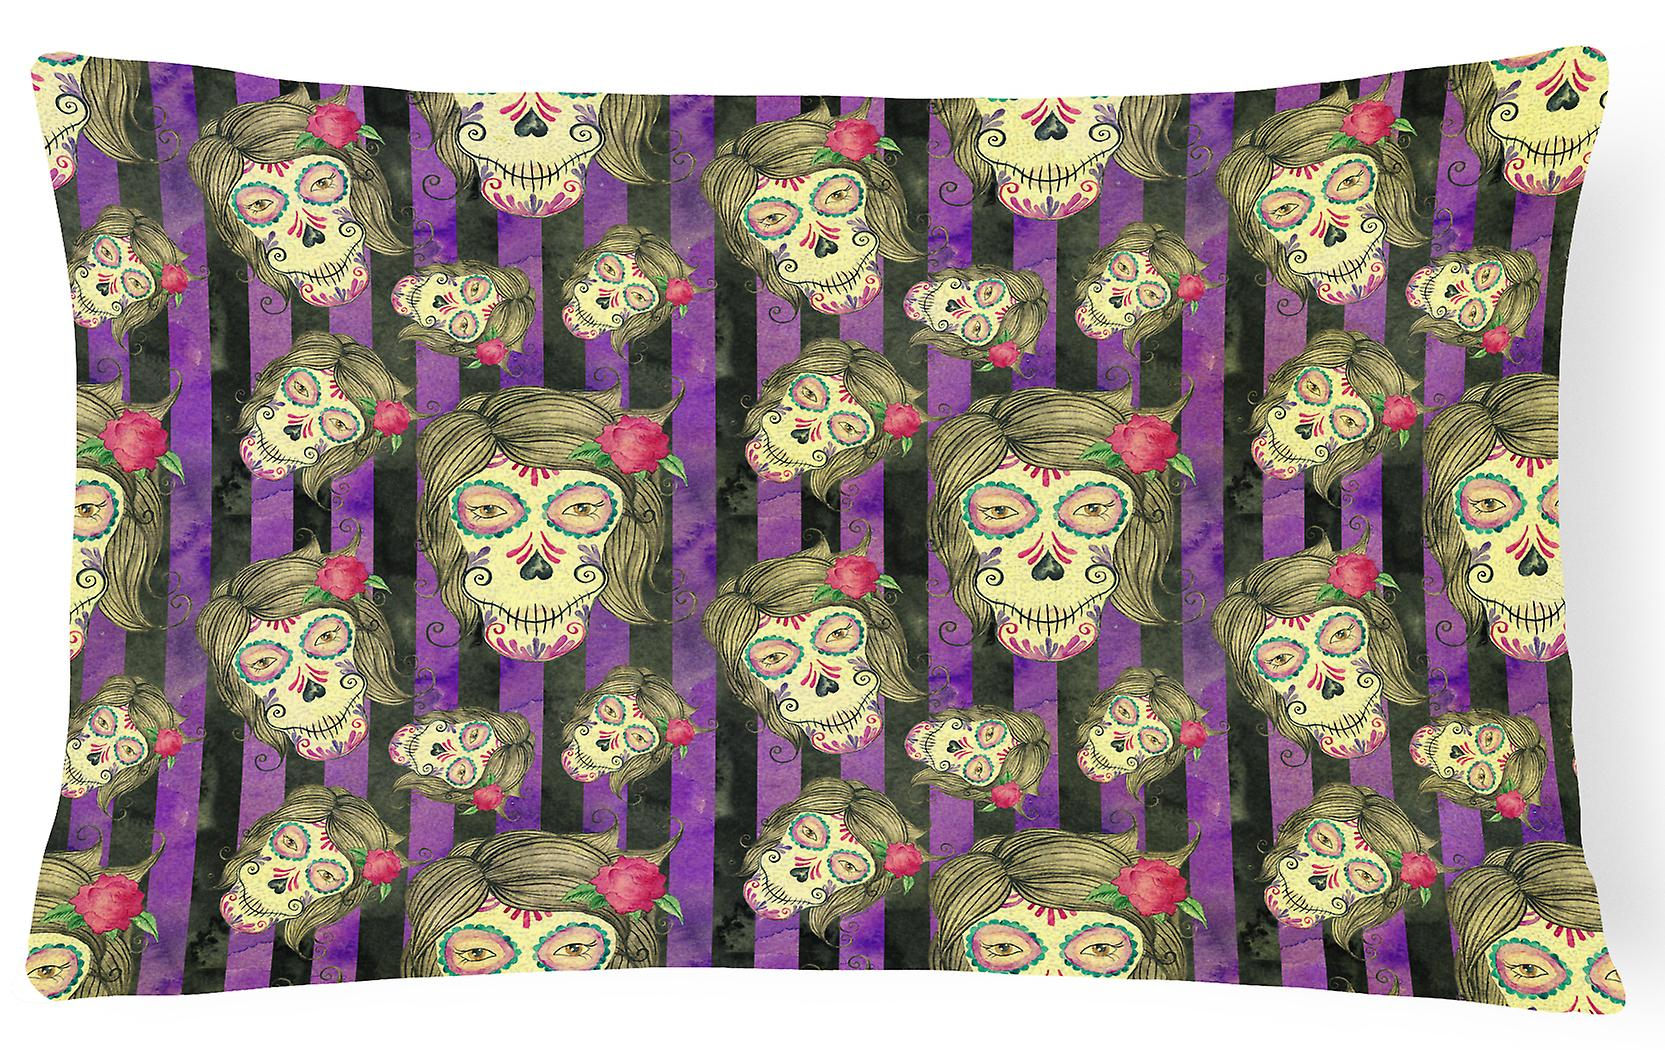 Halloween Pillow Decorative Day Canvas Fabric Of Watecolor The Dead 8wOkN0nPXZ